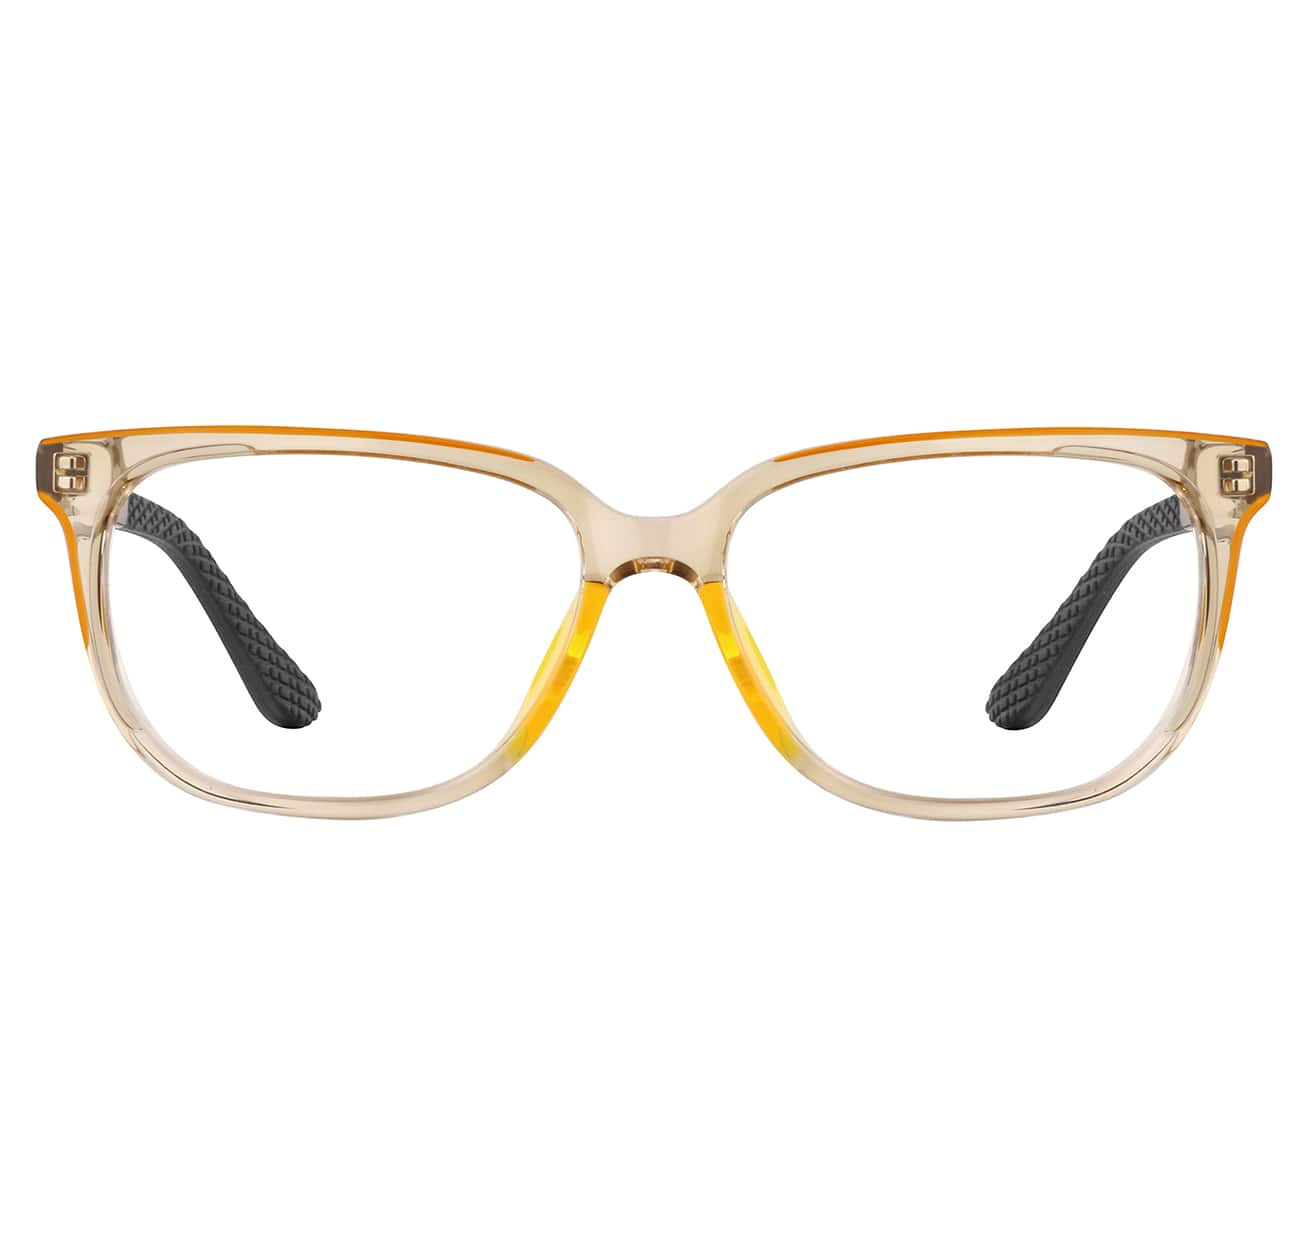 Image of Zenni brown rectangle glasses #4448115 I am fearless